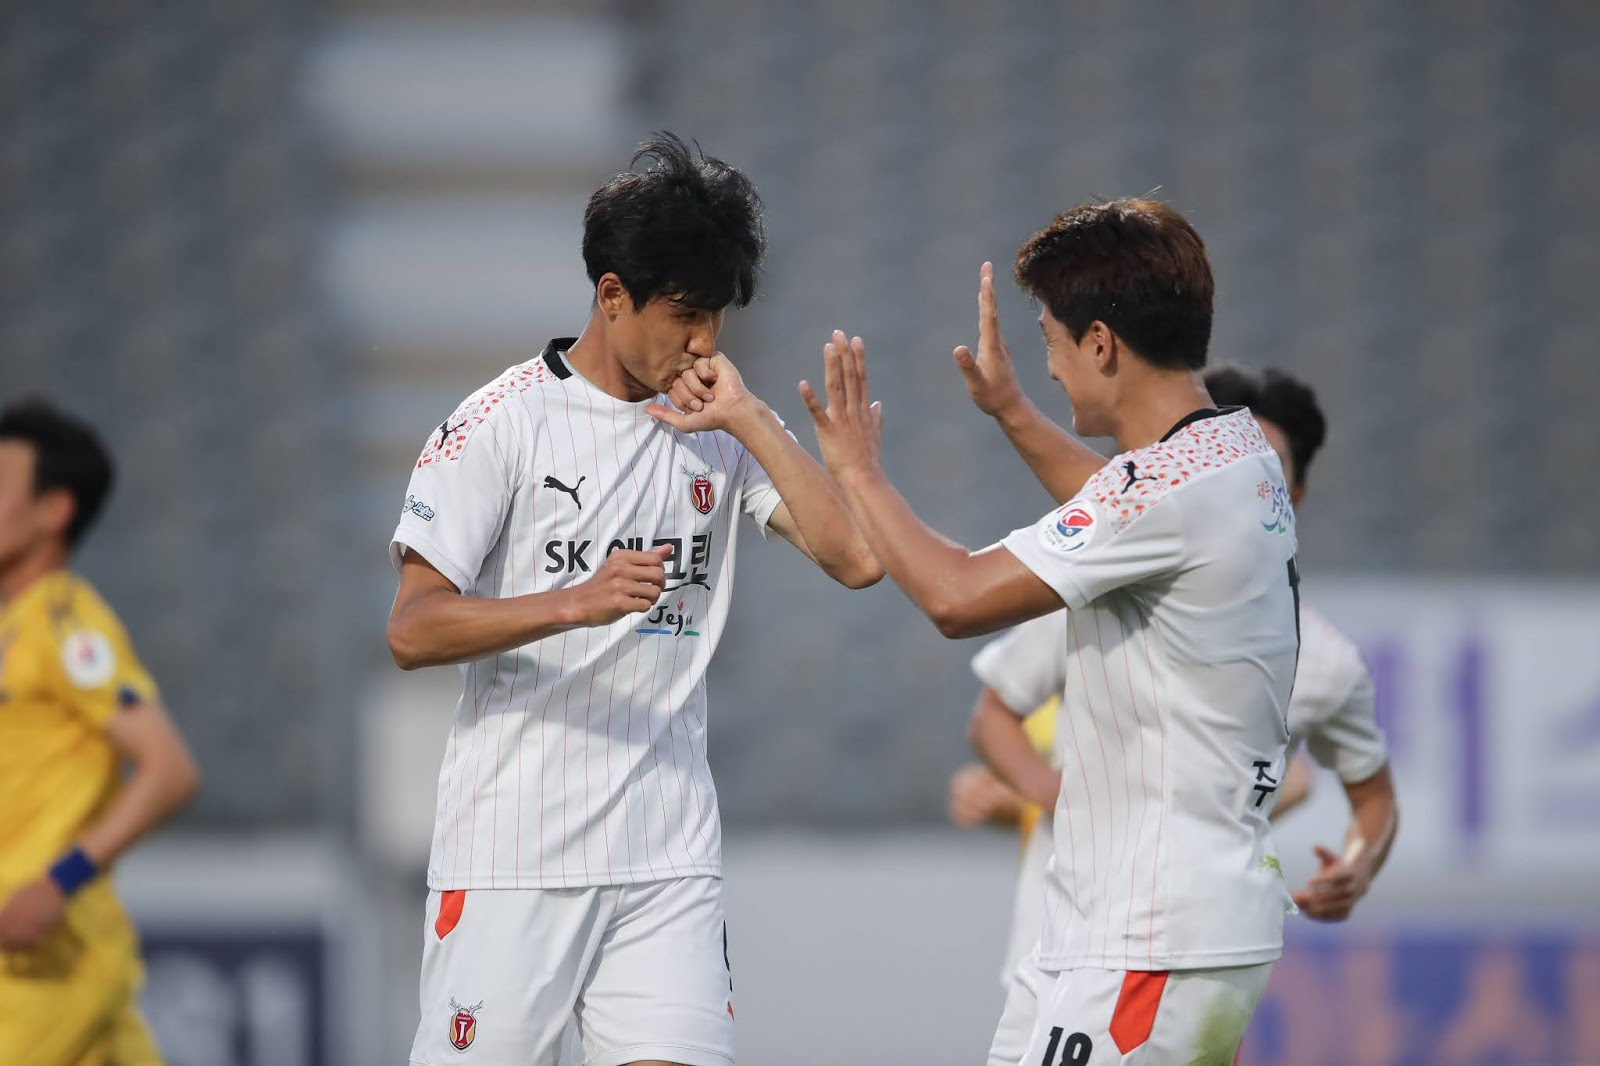 Jung Jo-gook celebrates his first goal for Jeju. 06.20.20